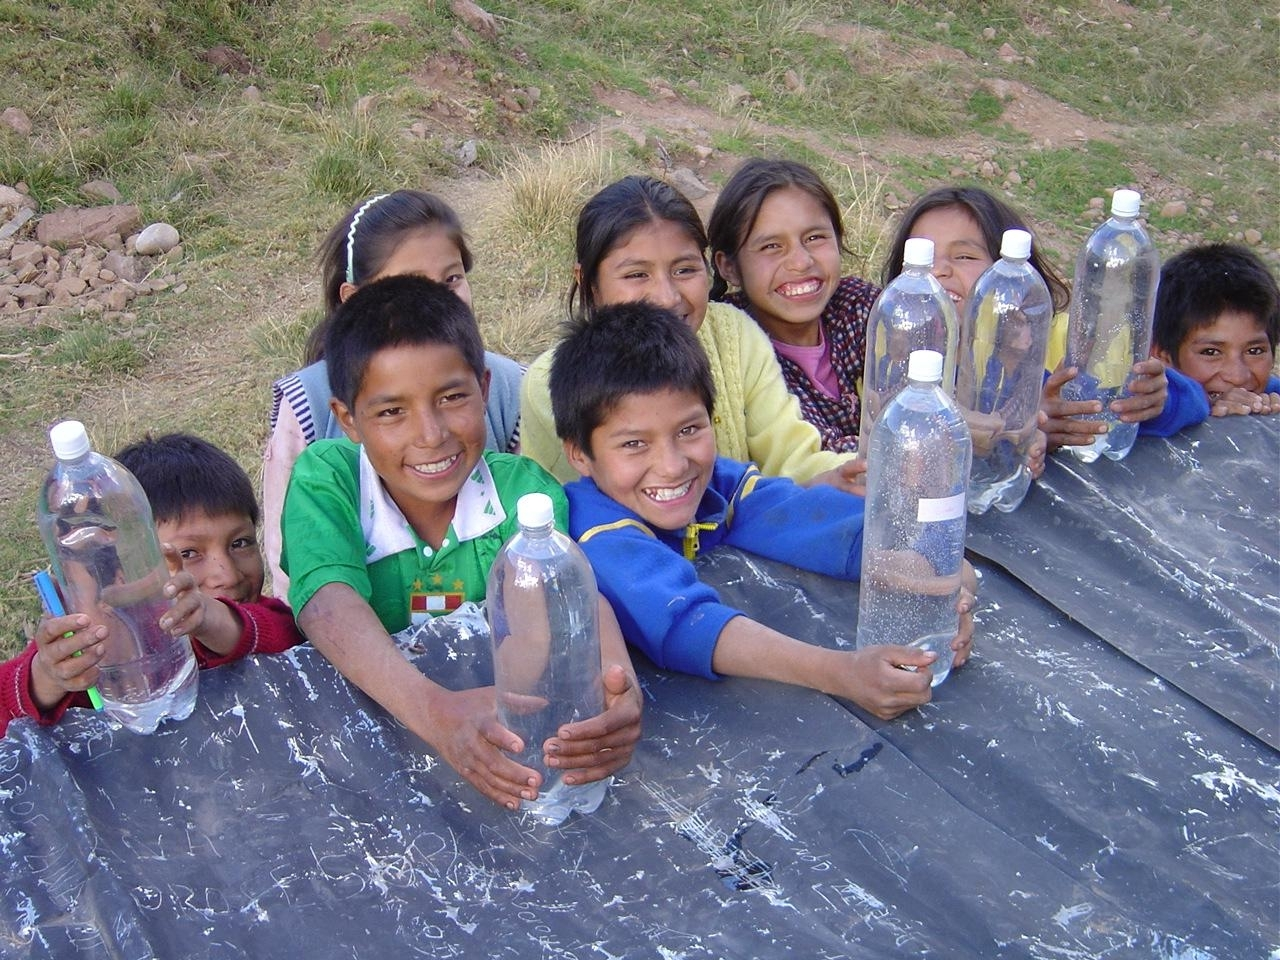 Watertap points @ School - Education starts with clean drinking water